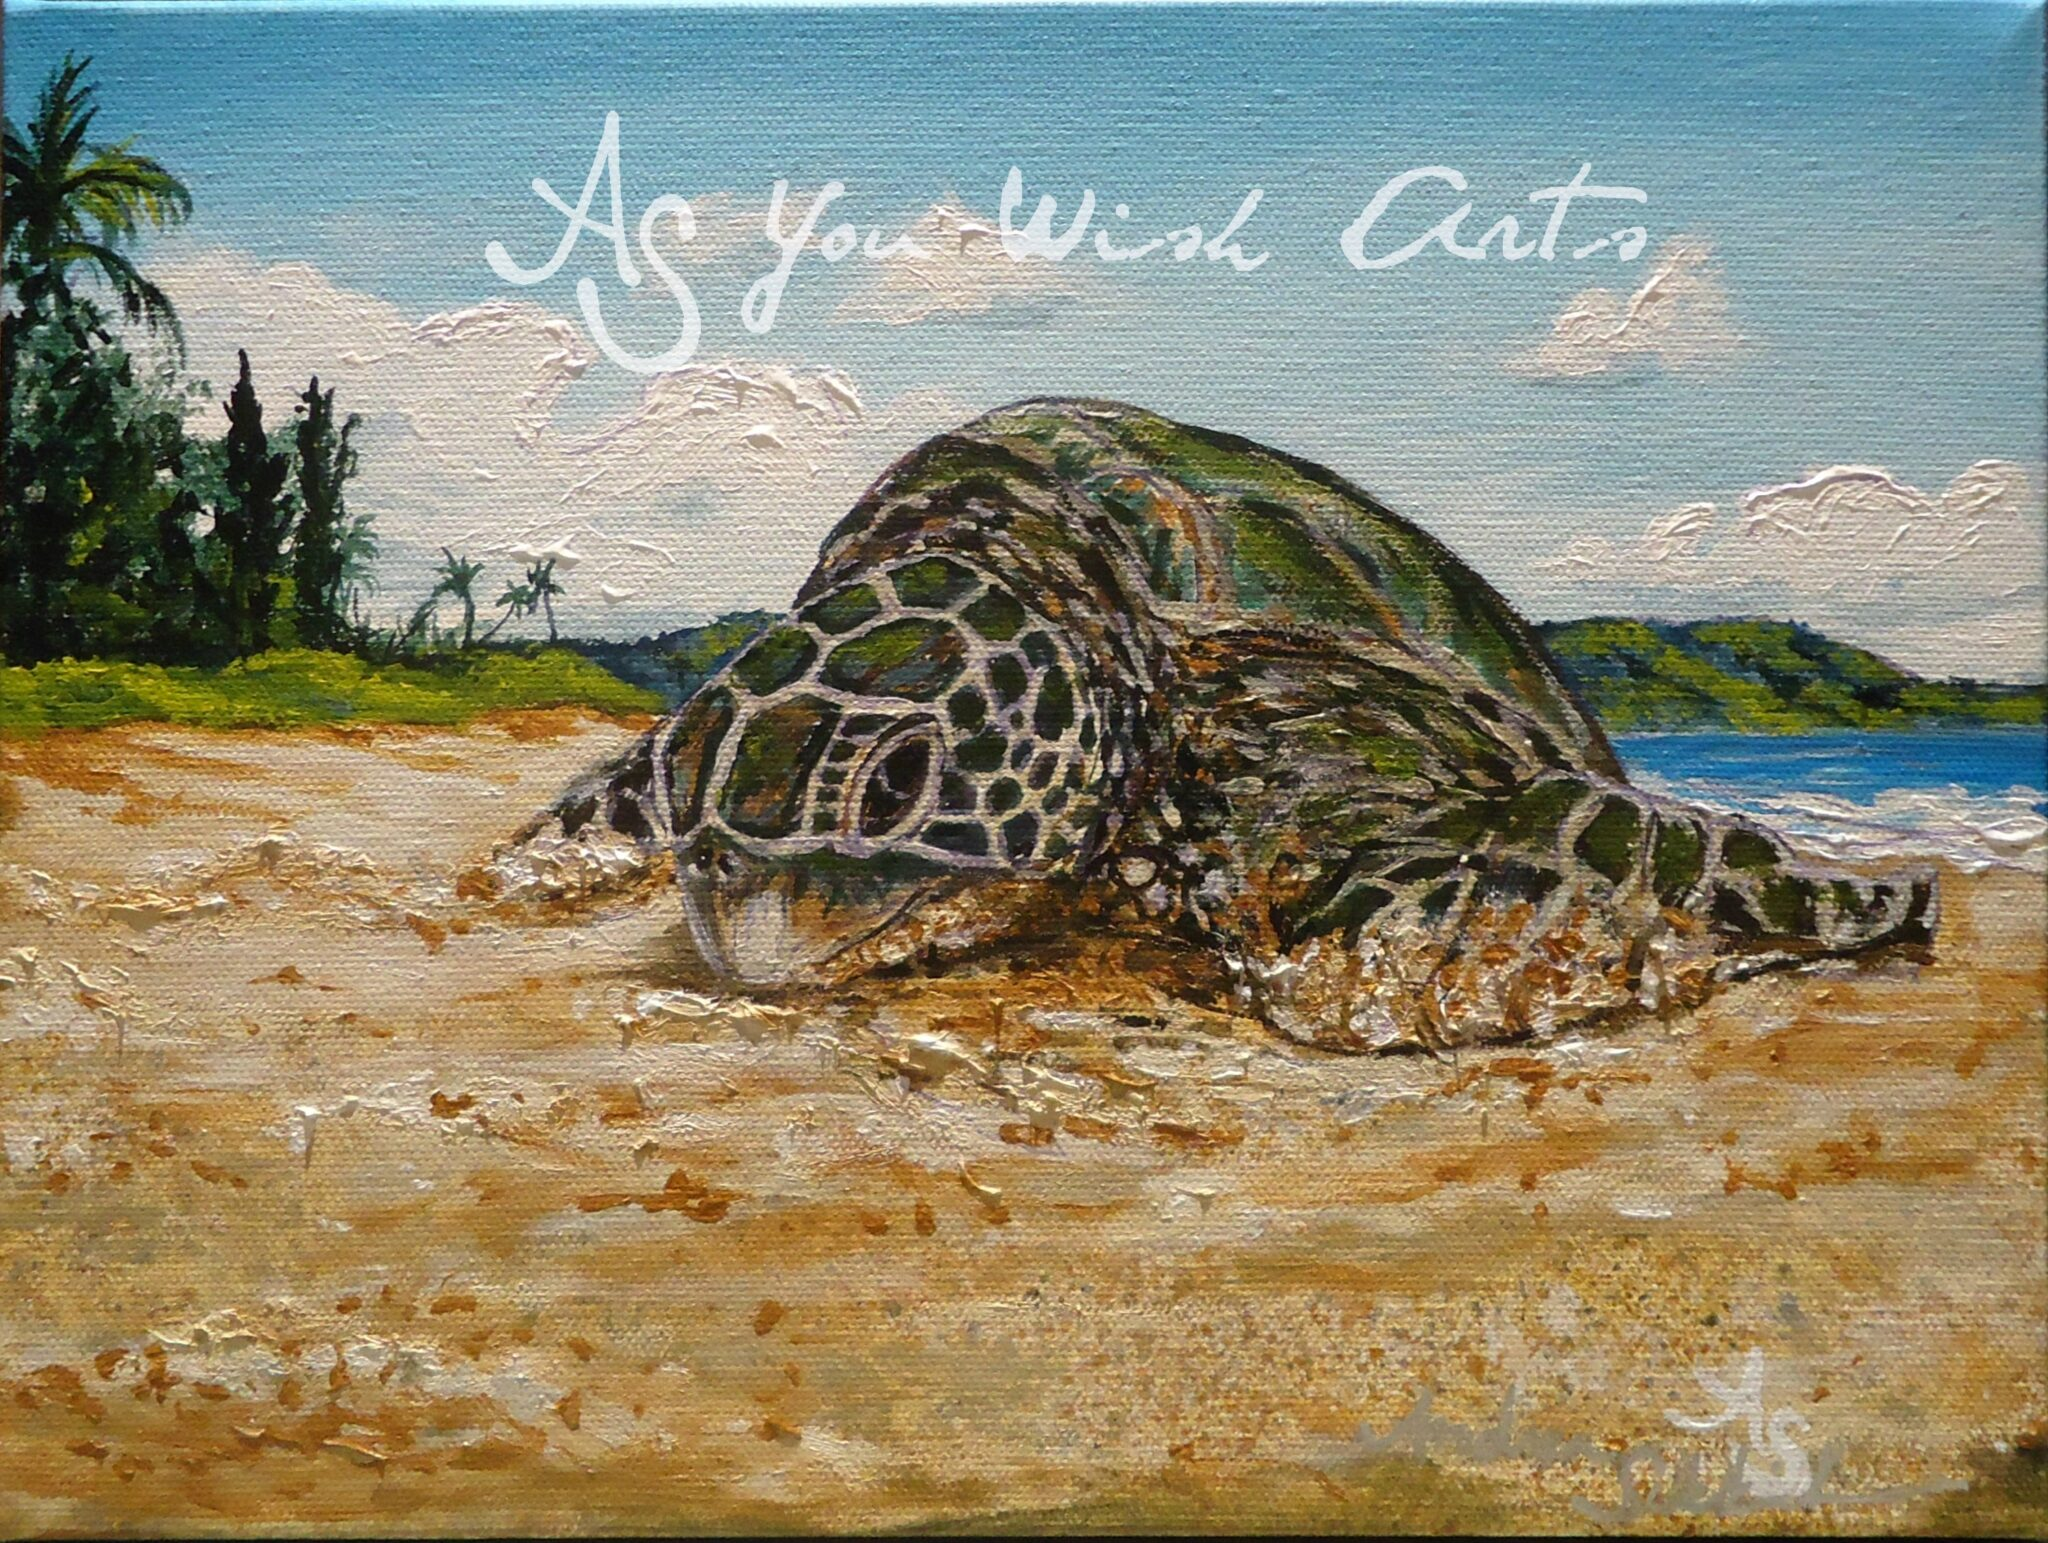 Honu winking with As you wish arts watermark